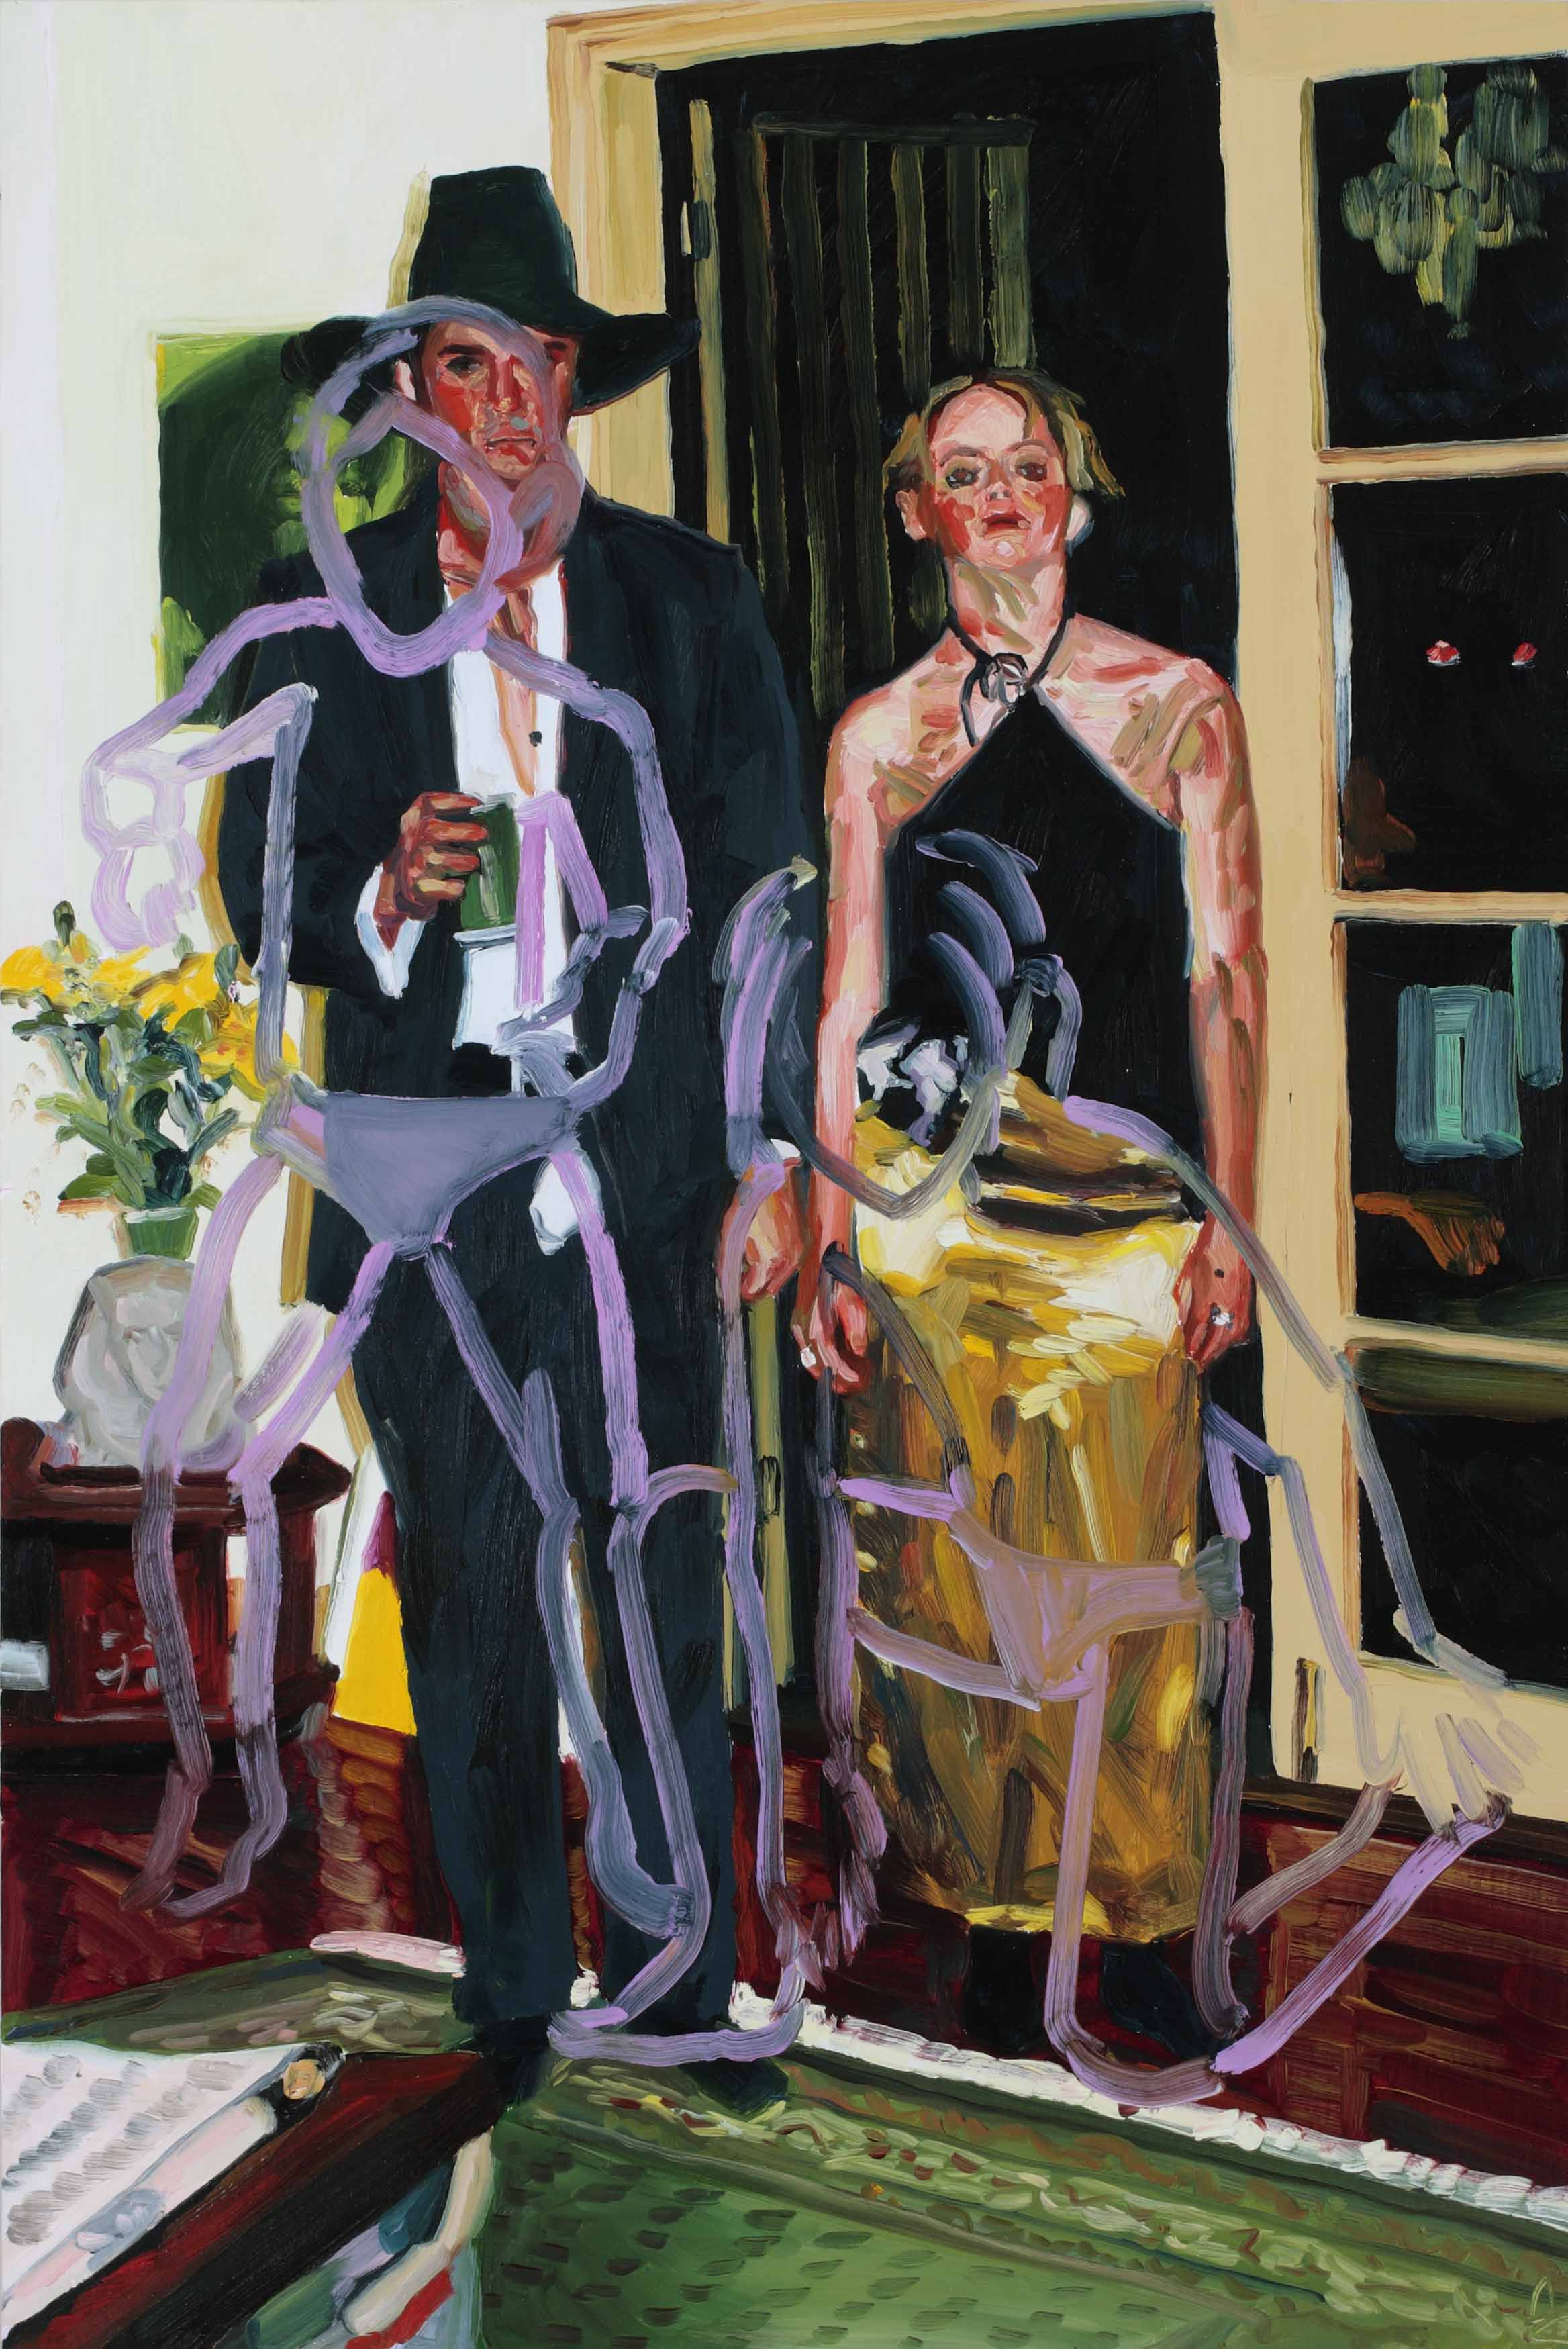 Bachelors and Spinsters, oil on board, 60 x 40 cm, 2008.